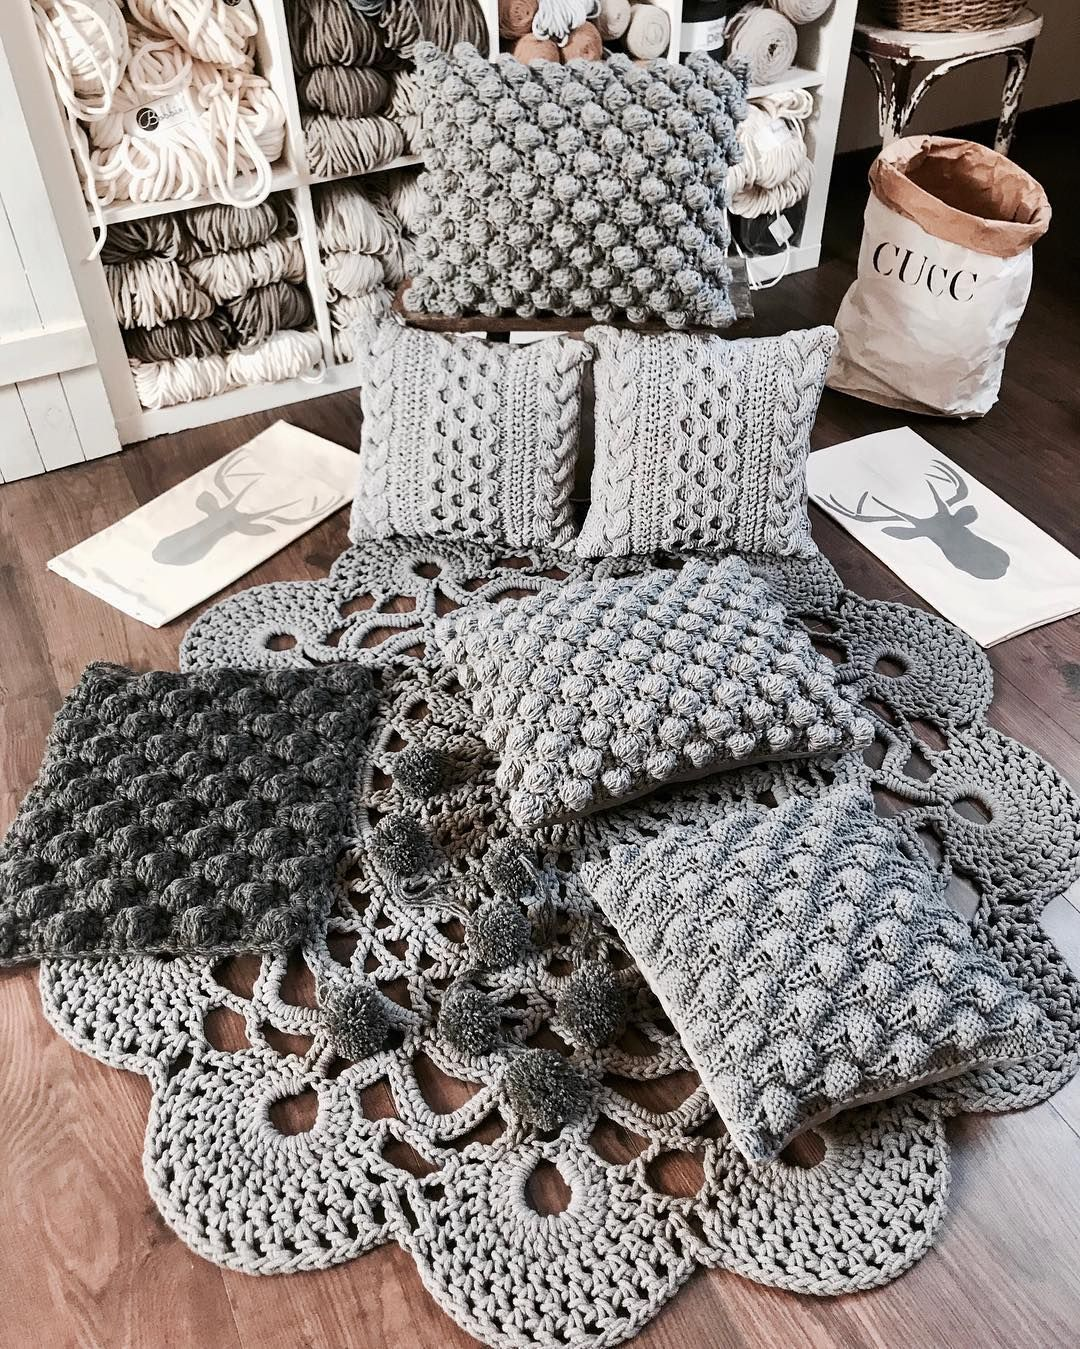 Beautiful textured throw pillows in shades of grey